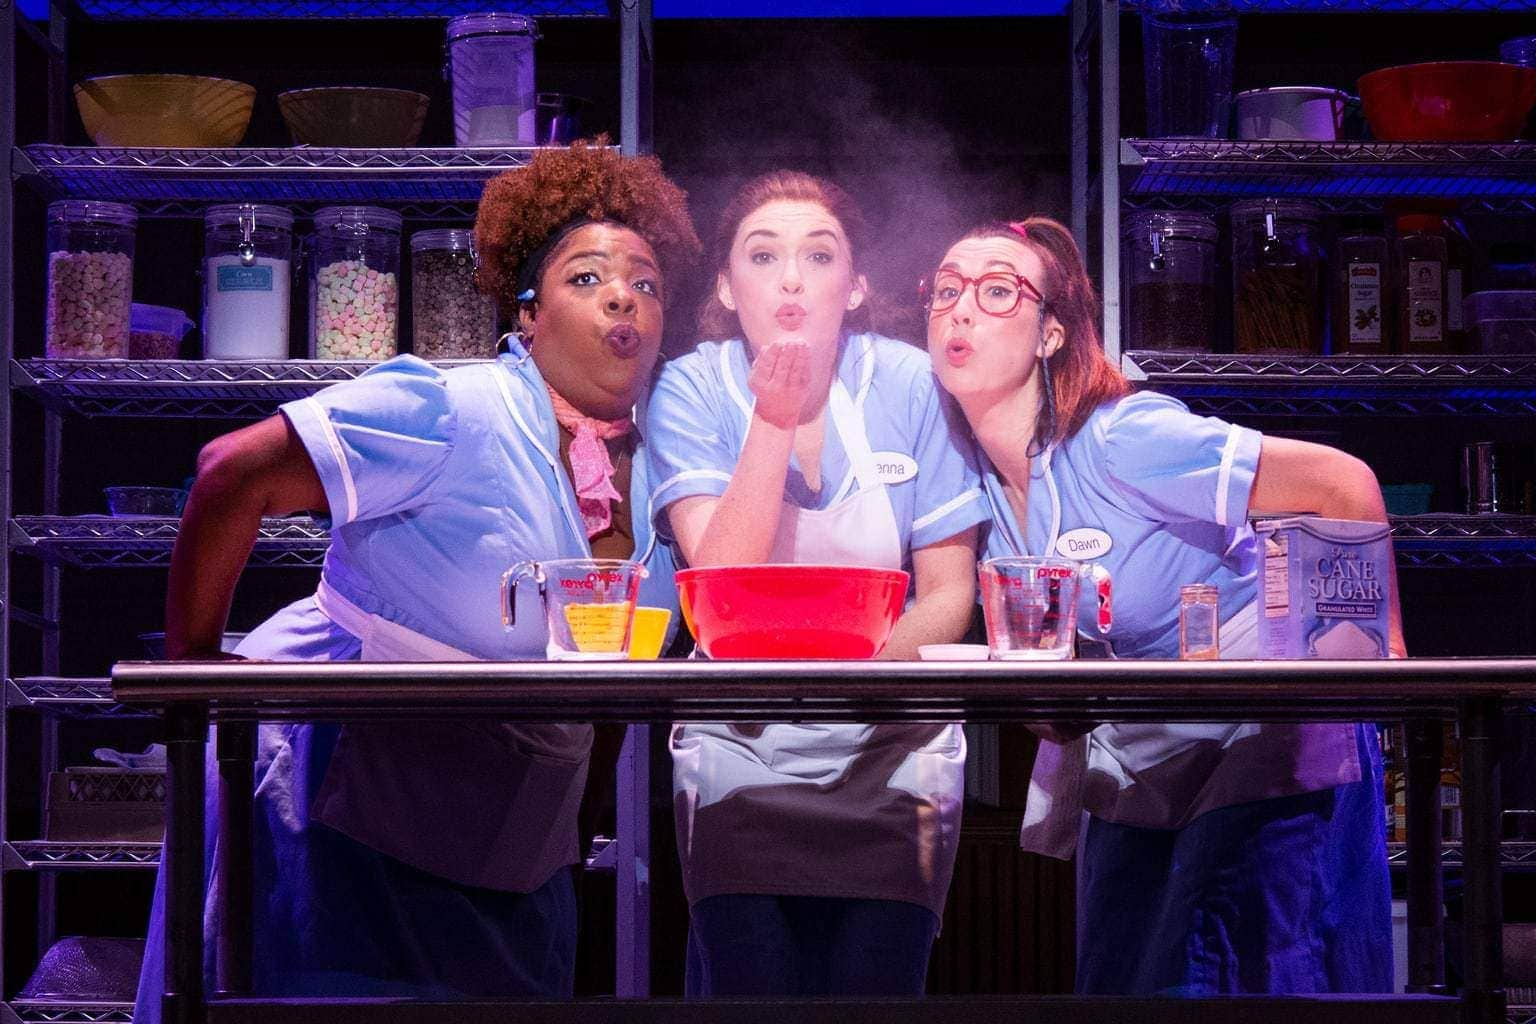 Waitress The Musical Performing at The Fox Theatre in Atlanta